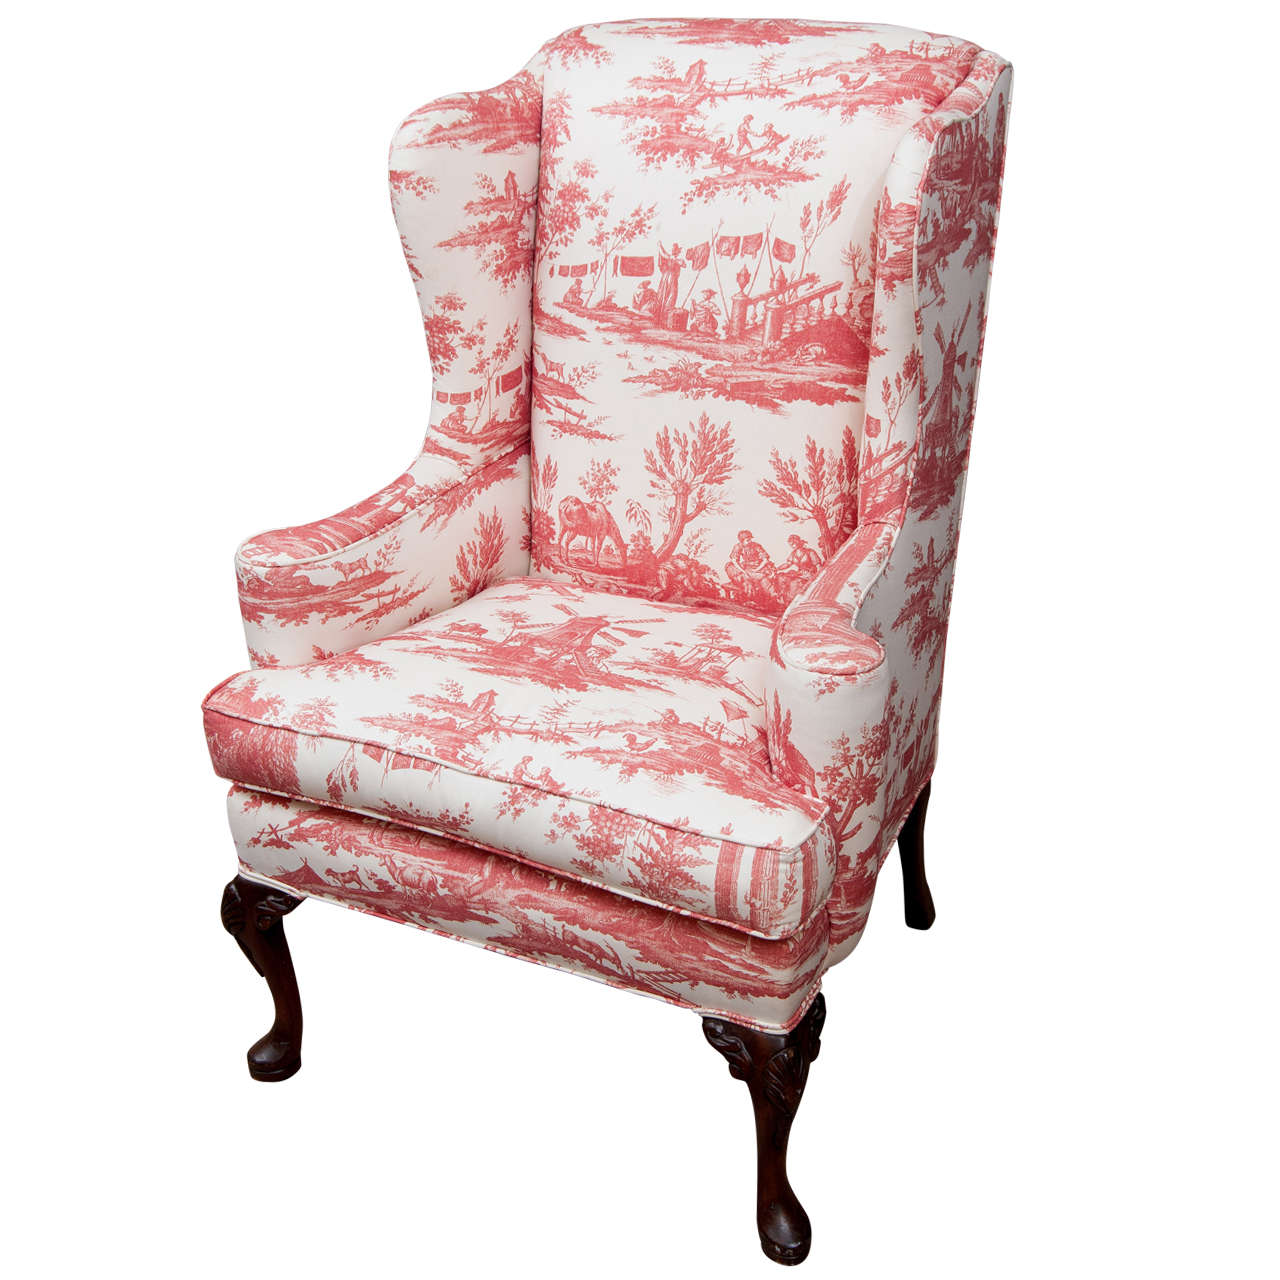 Queen Anne Style Wing Chair at 1stdibs